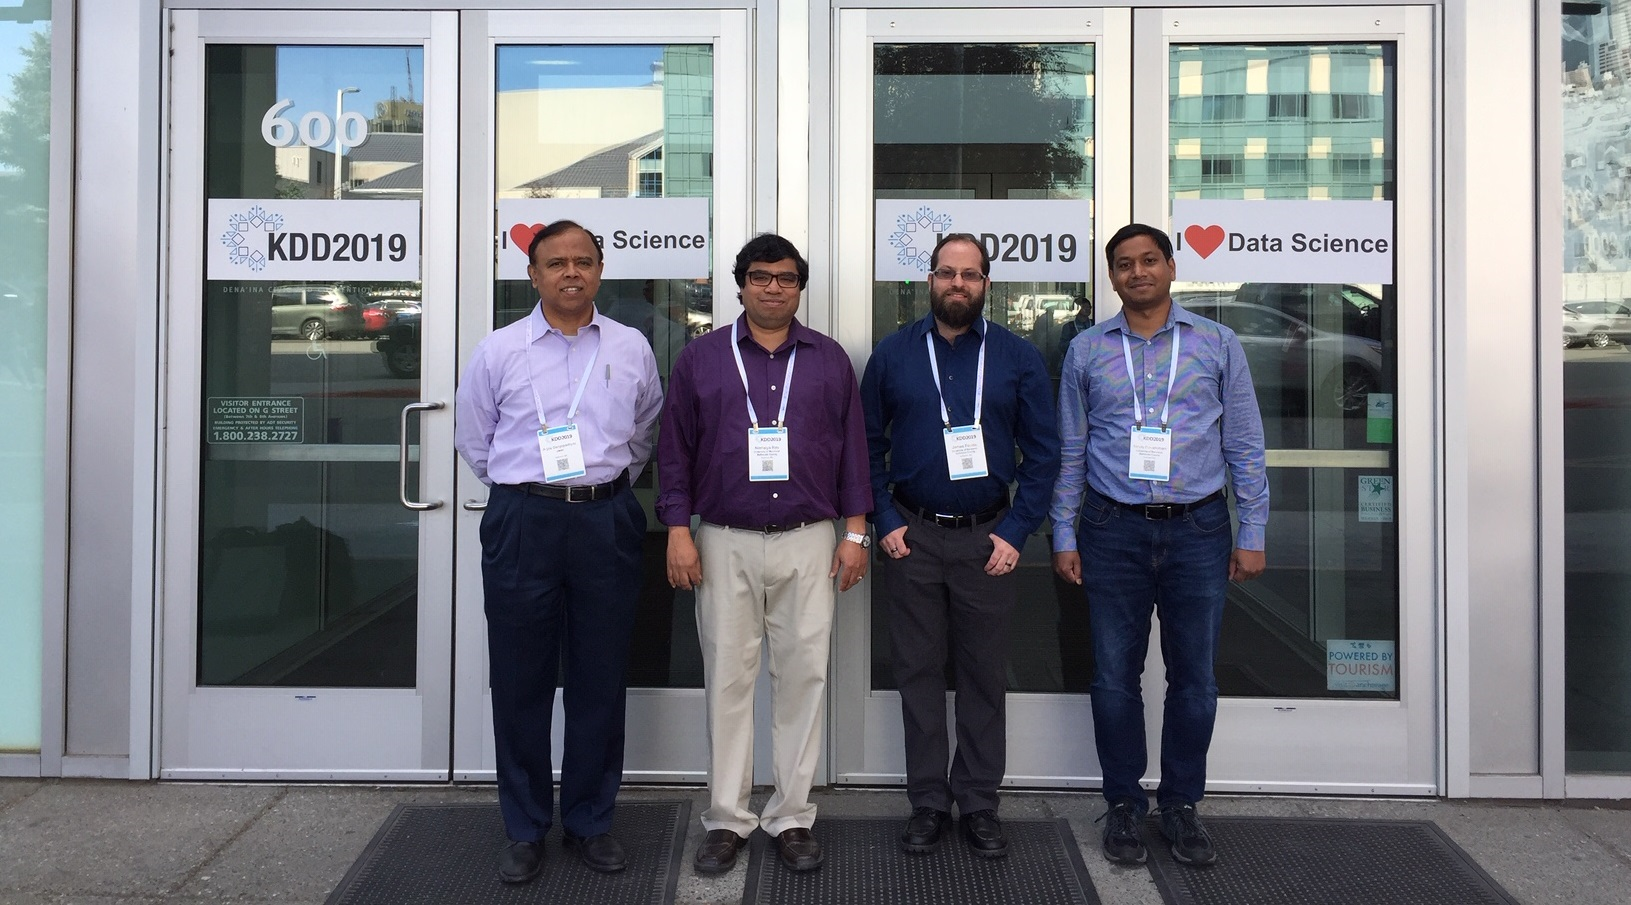 Faculty Attend KDD 2019 Data Science Conference